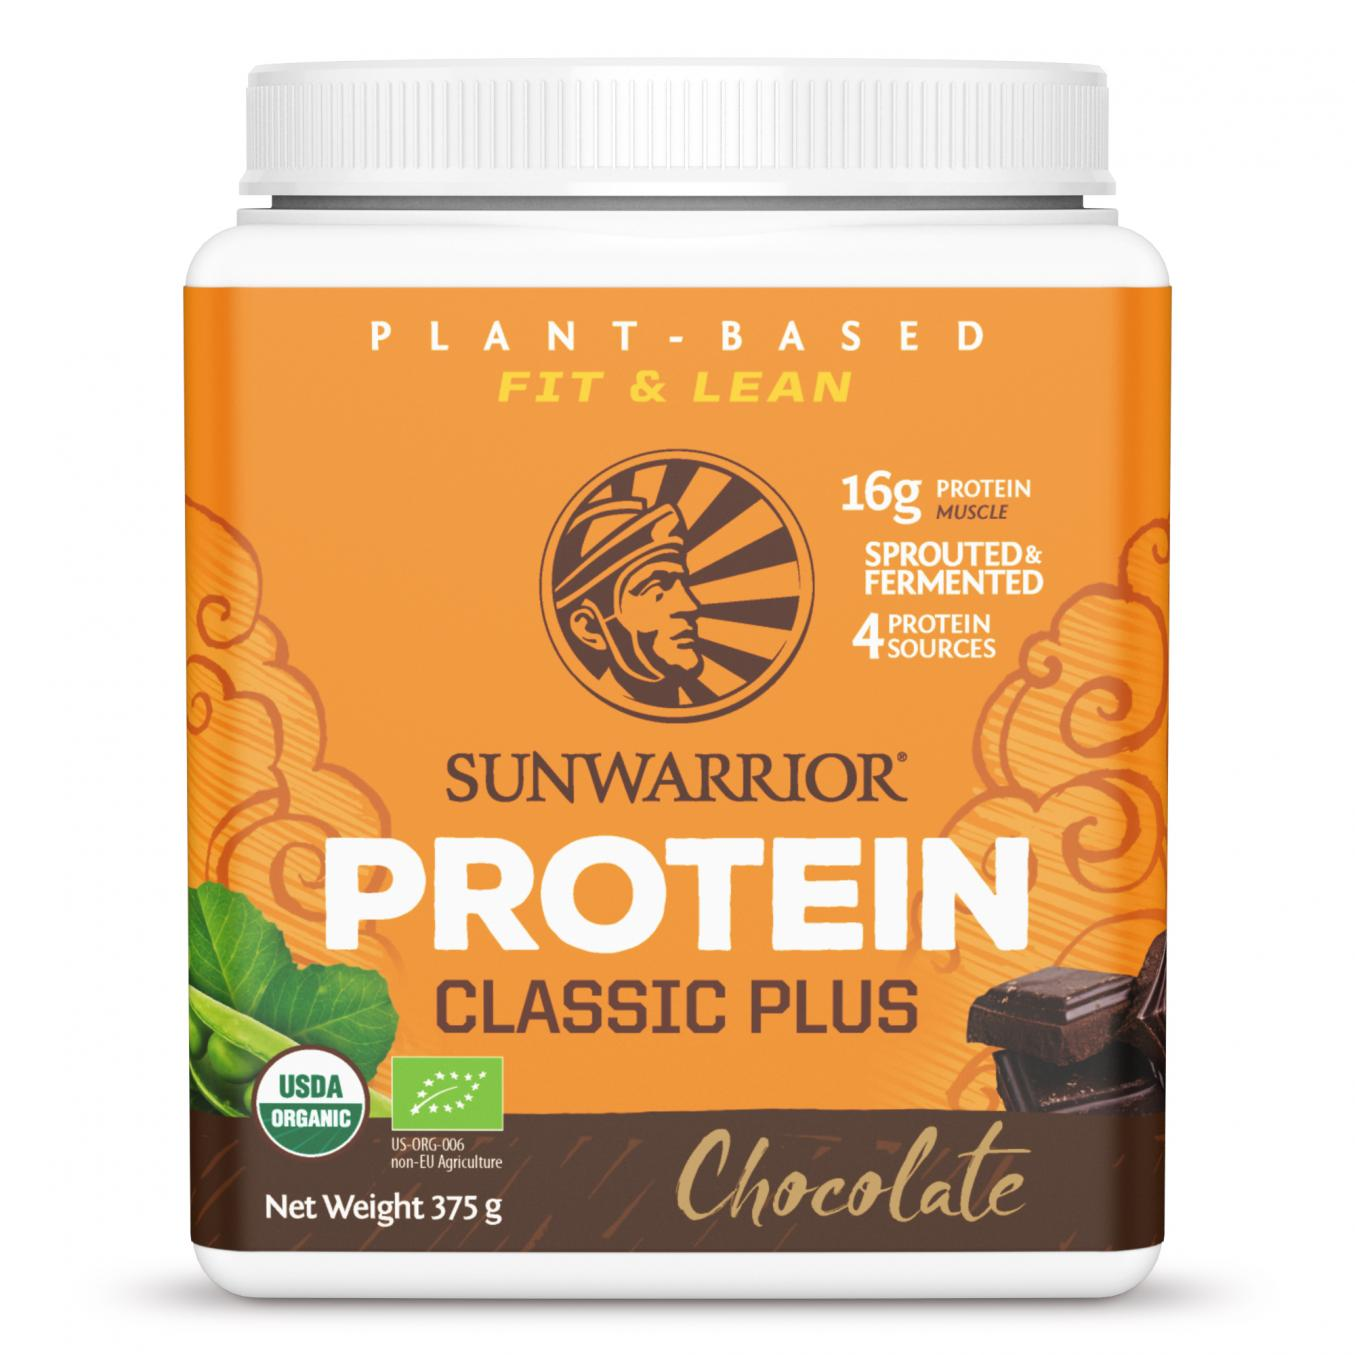 Protein Classic Plus Chocolate 375g (Orange Tub) (Currently Unavailable)